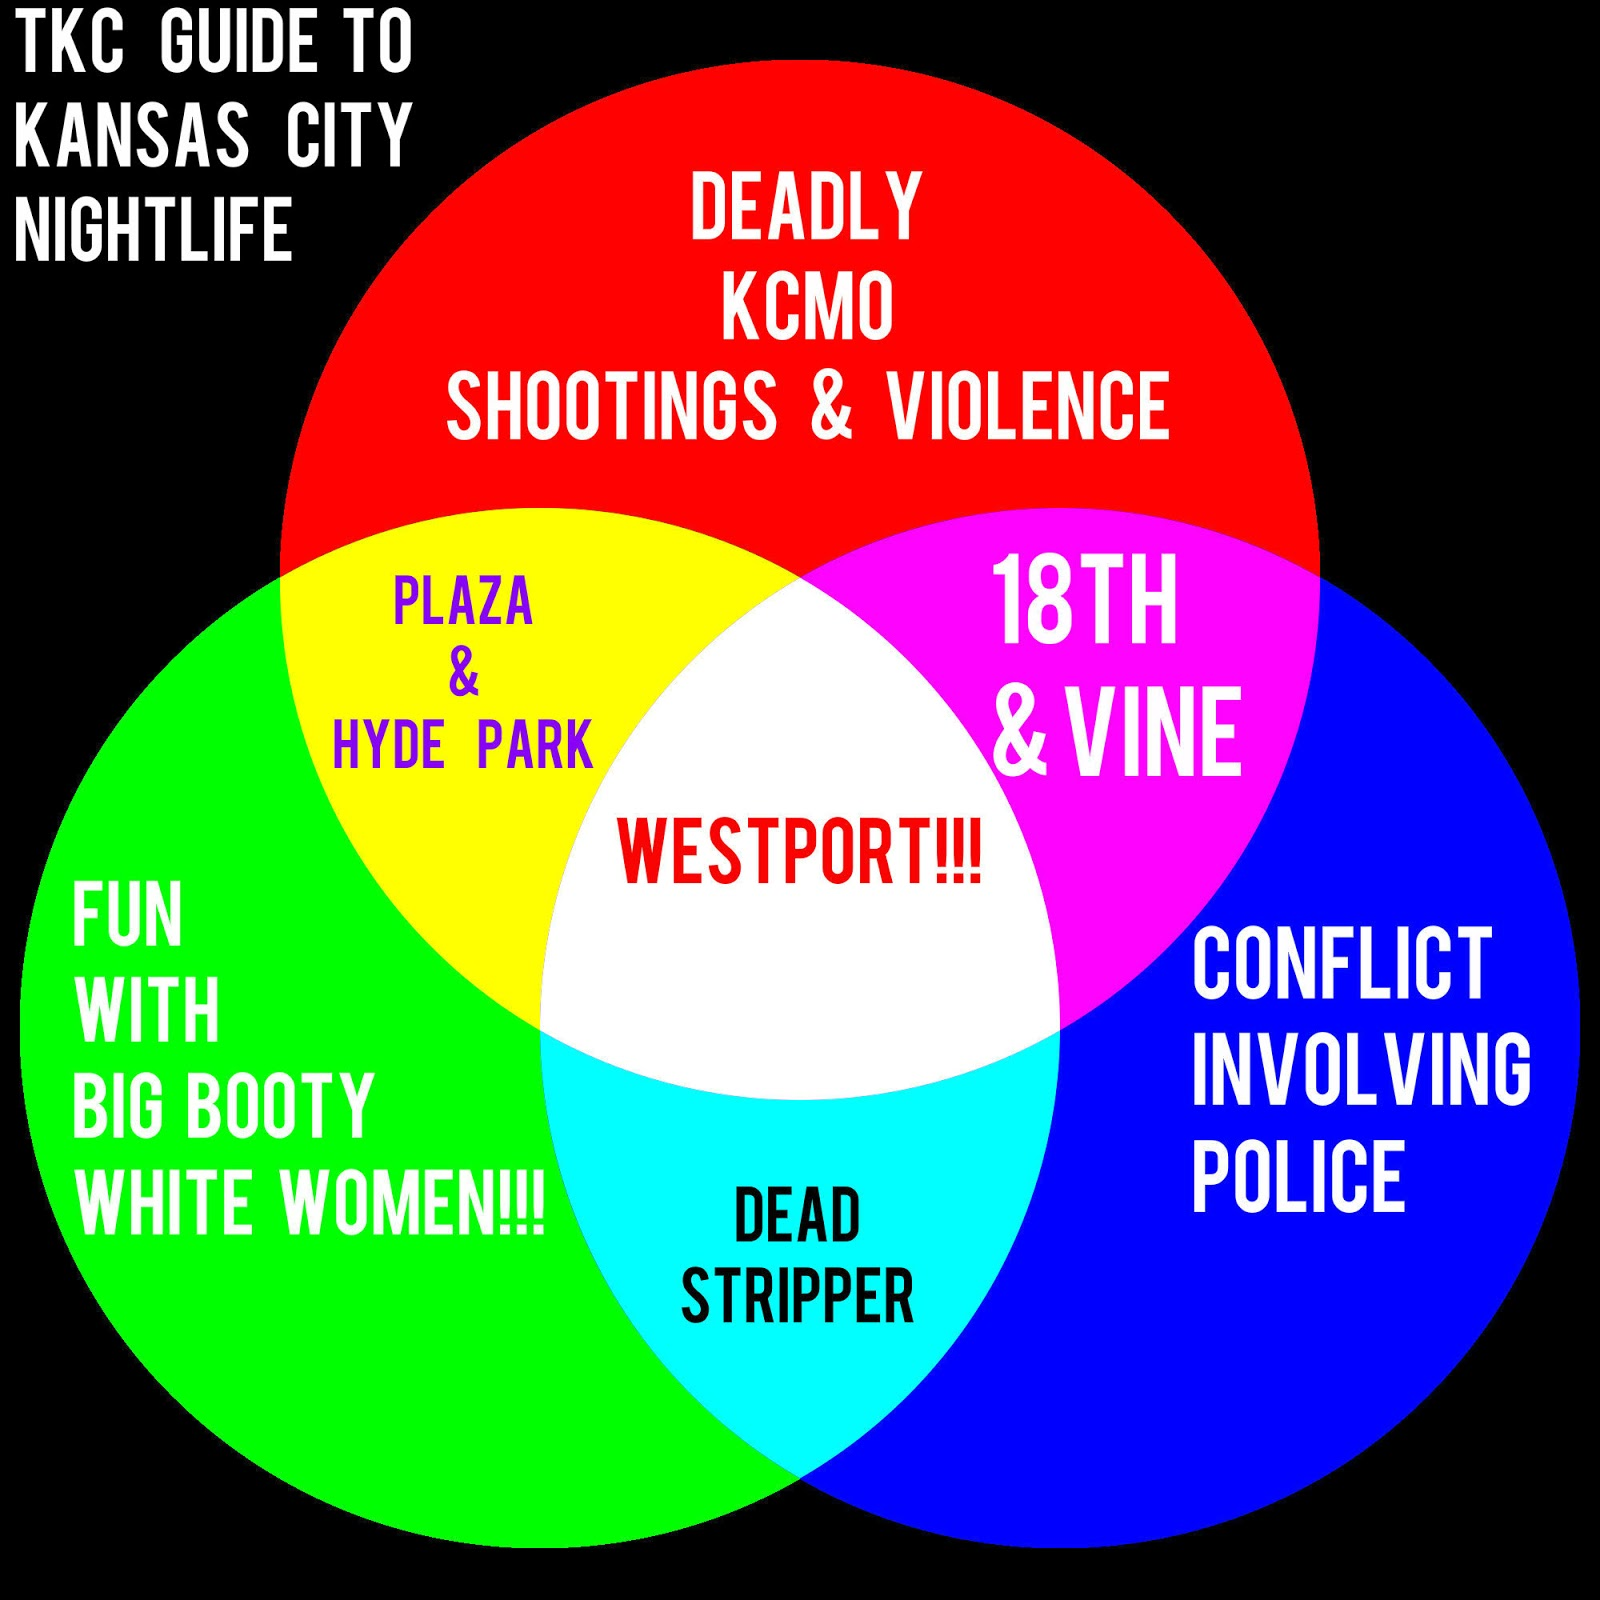 Tonys kansas city september 2017 we offer this helpful tkc guide that perfectly represents 2017 kansas city nightlife pooptronica